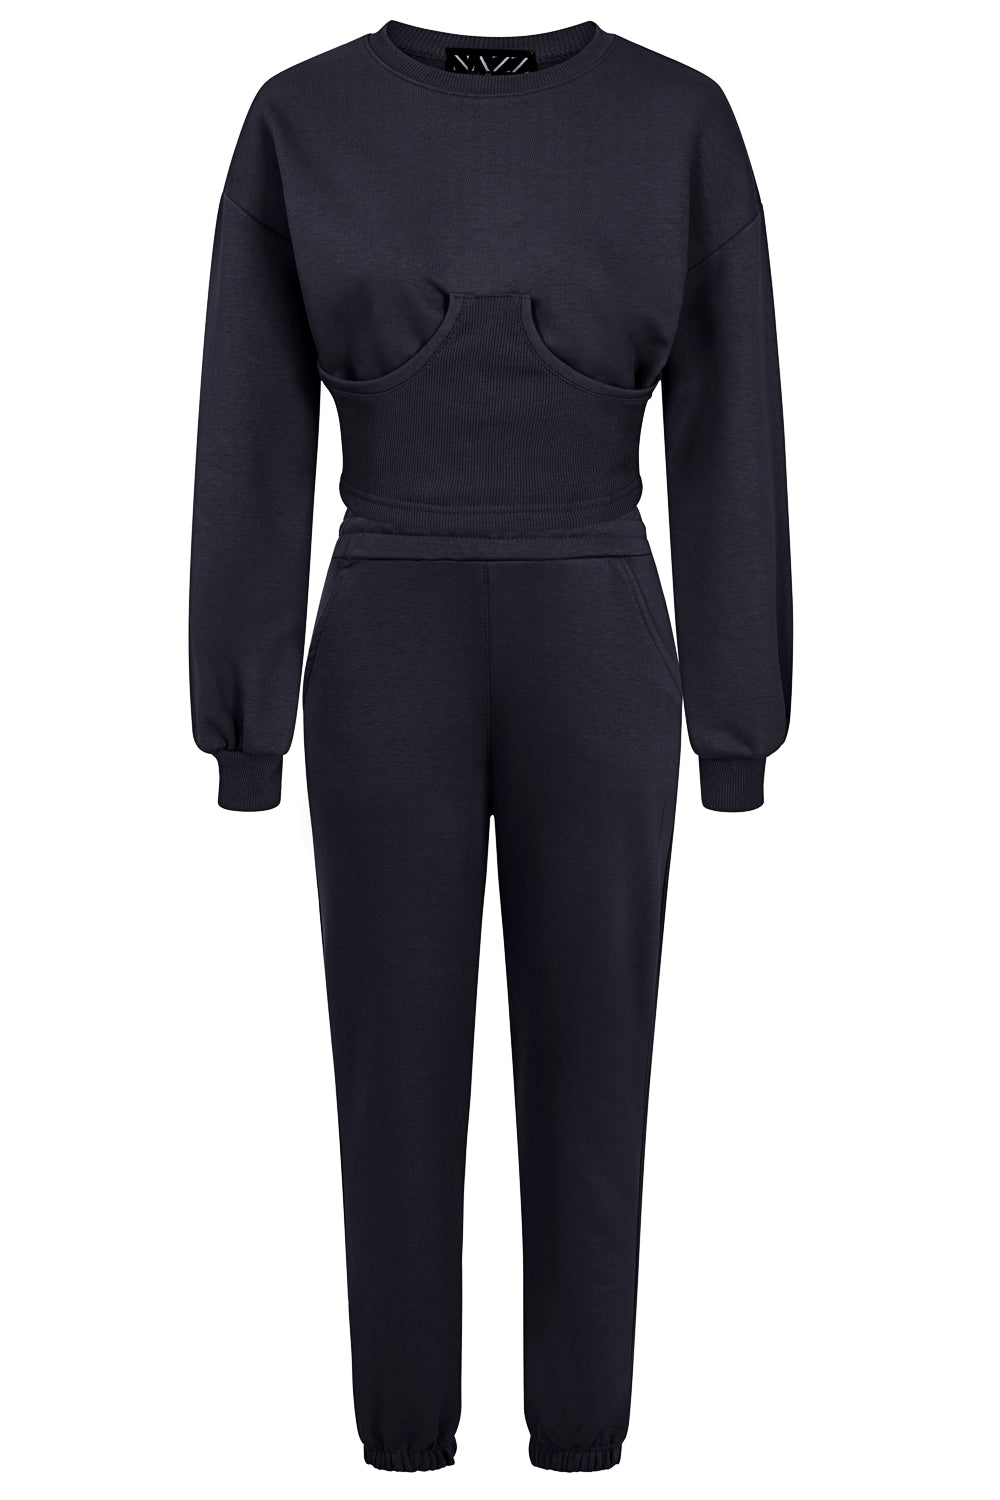 Sasha Navy Blue Under Bra Waisted Hoodie Tracksuit Set